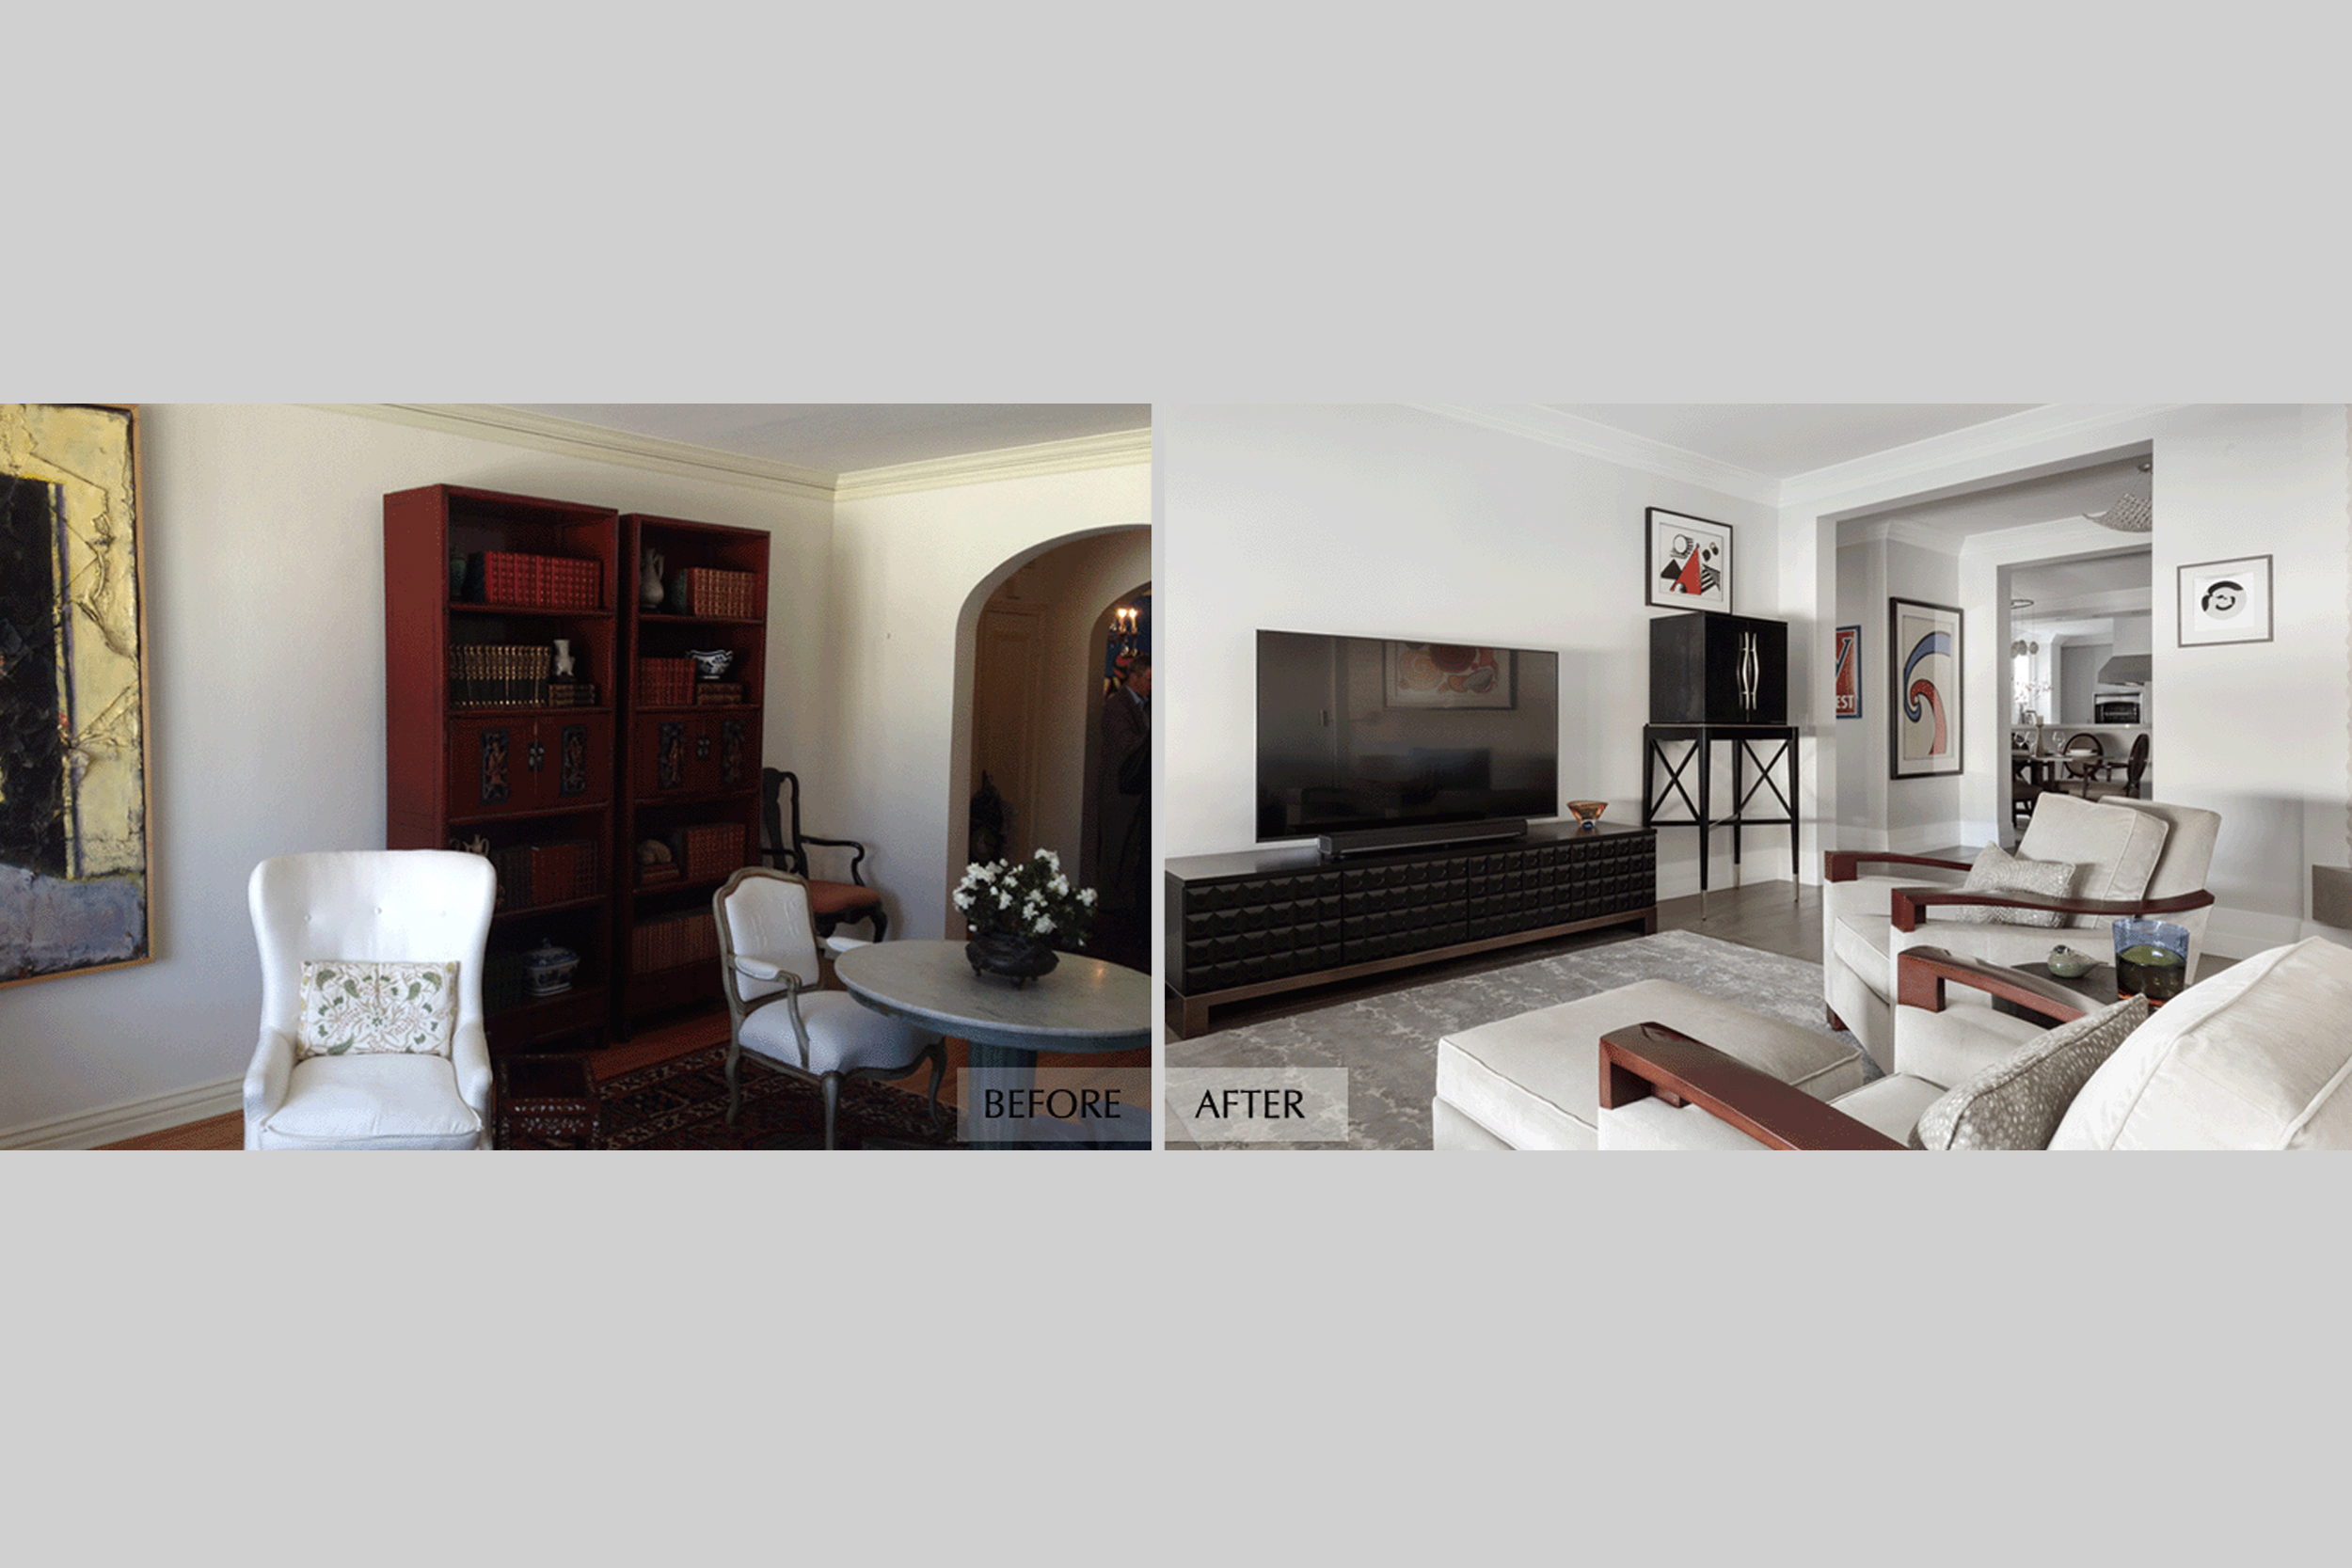 DESIGN415 | Before and After Pacific Heights San Francisco Living Room Remodel and Design